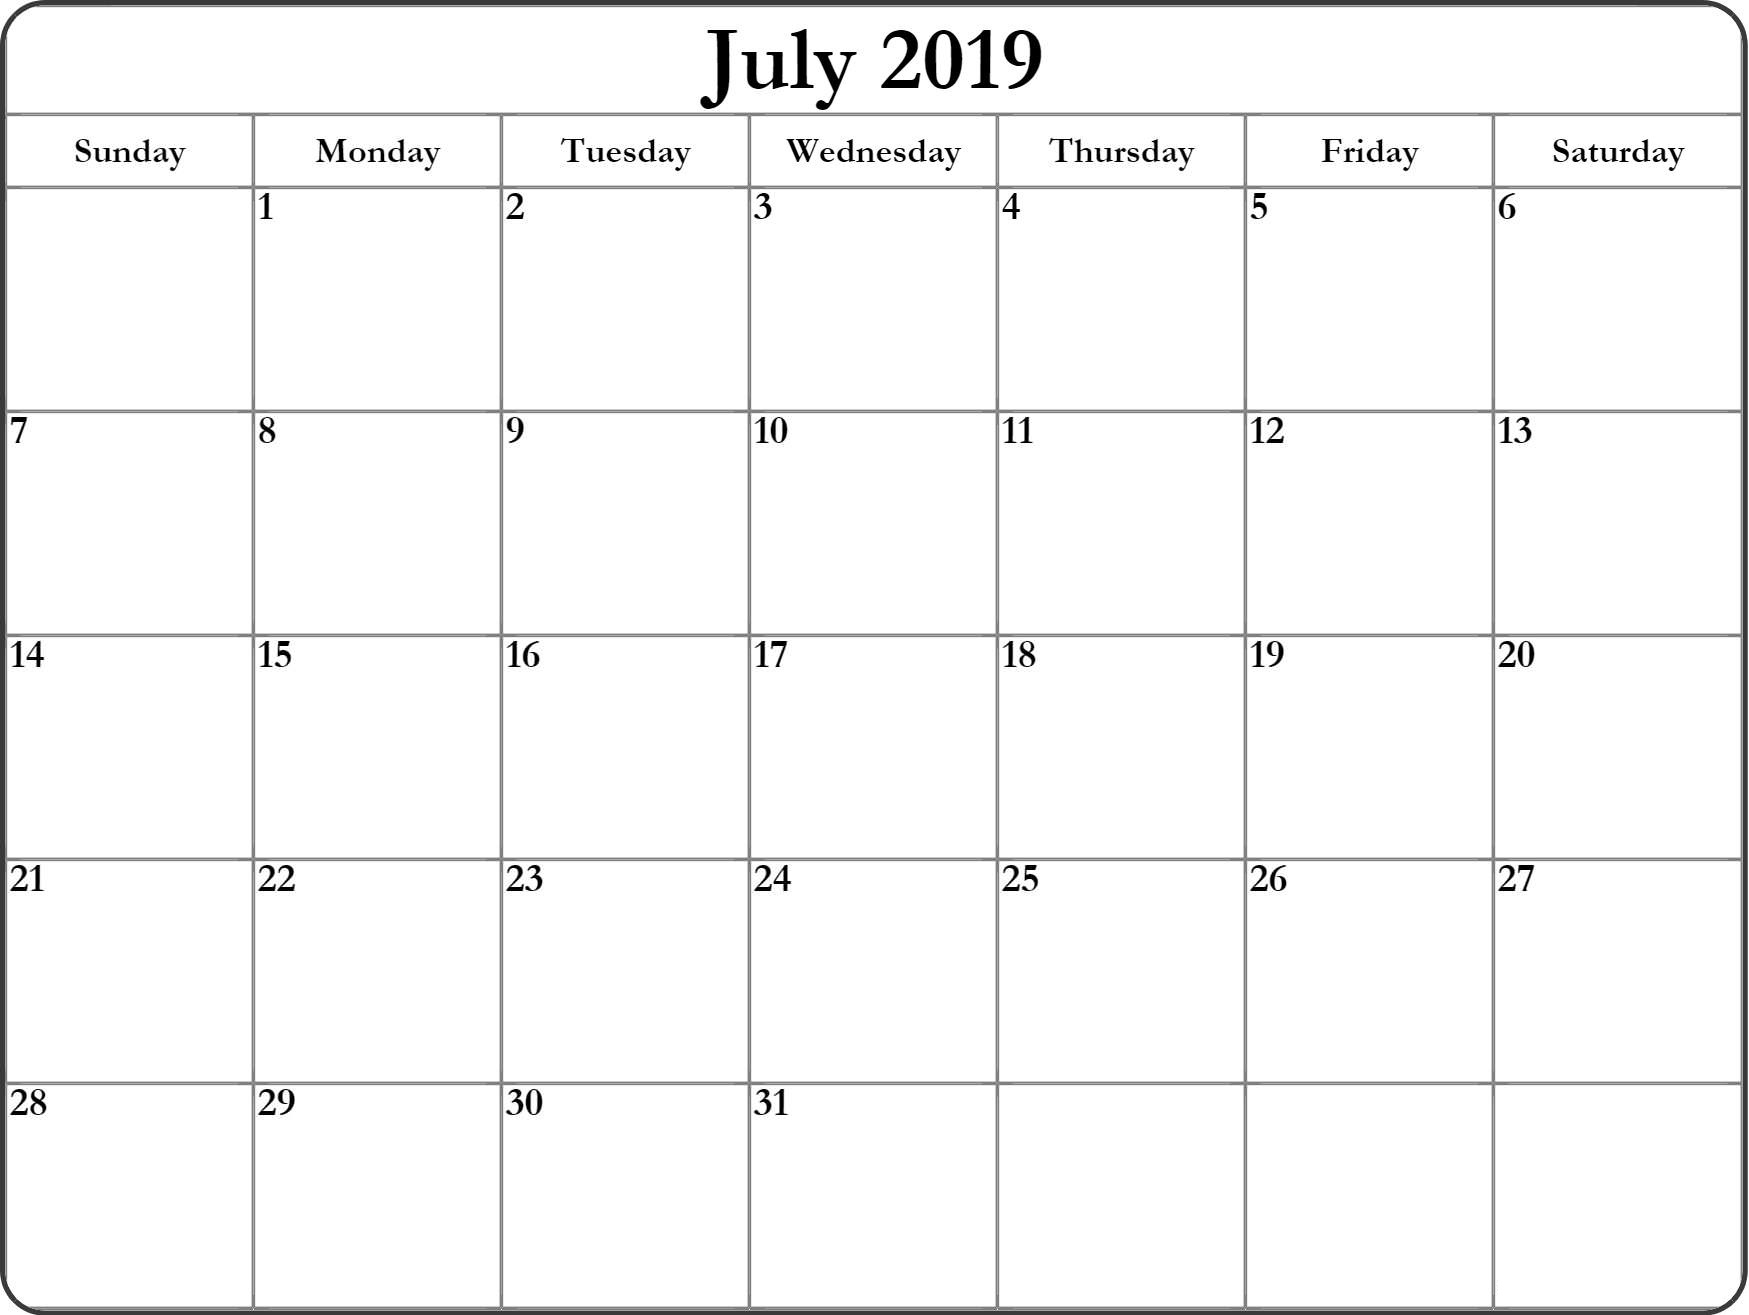 Printable July 2019 Calendar Free Template - Free Printable Calendar regarding Cute Calendar Templates July